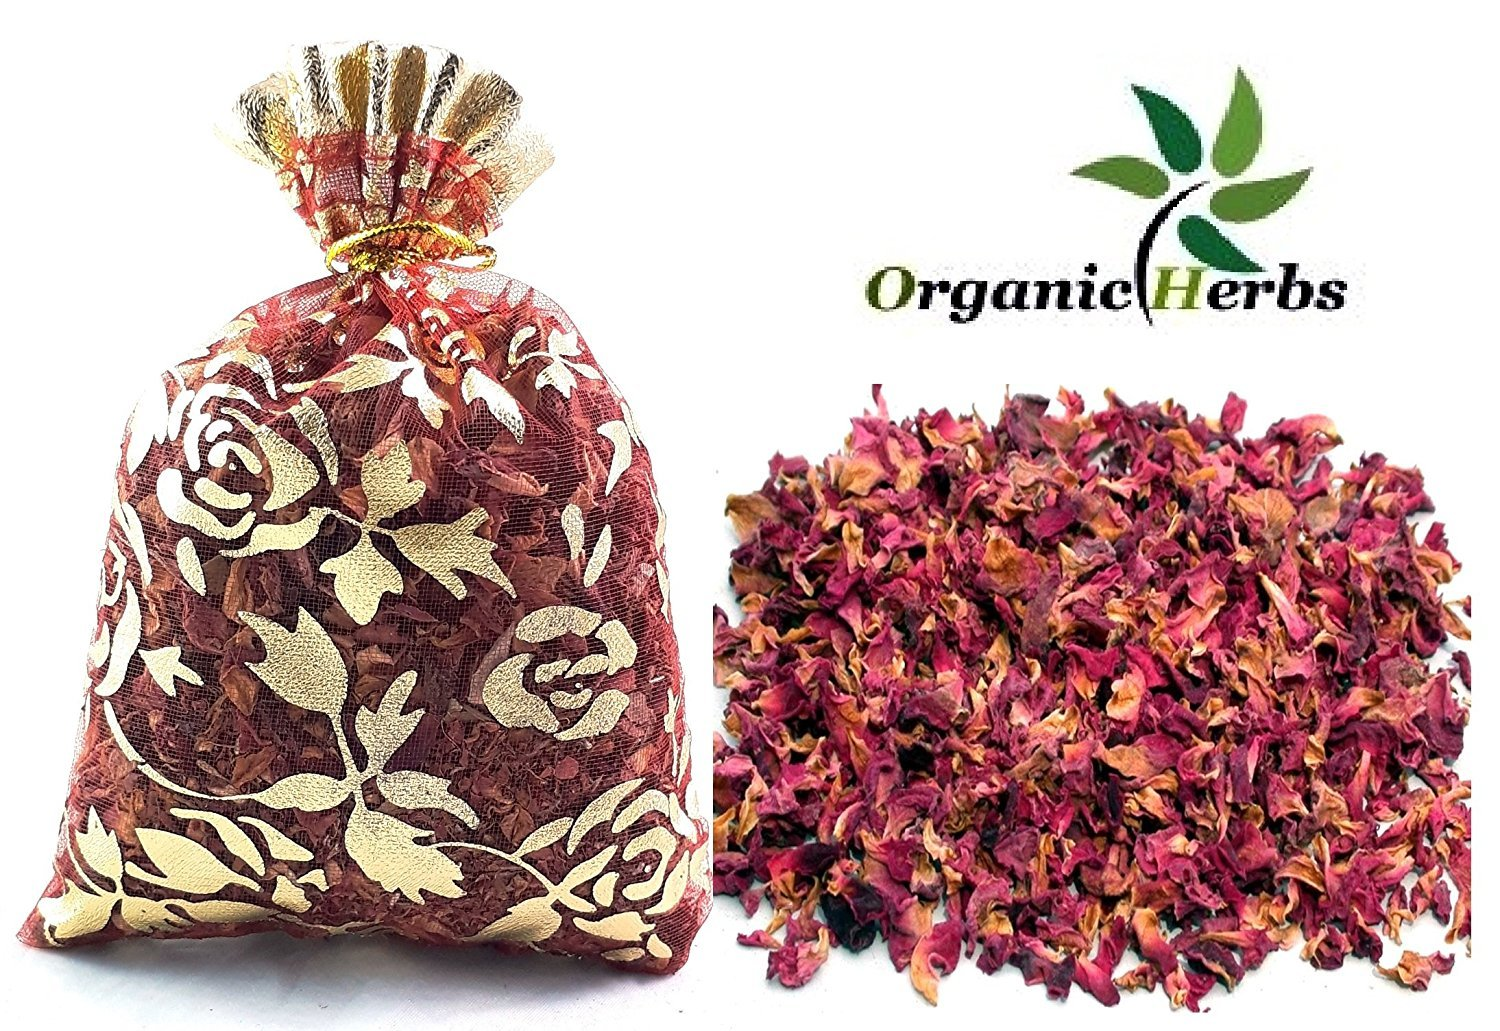 Organic Herbs (Pack of 100) 20g DRIED ROSE PETALS Potpourri Decor Organic Herbal Craft Car Perfume by Organic Herbs